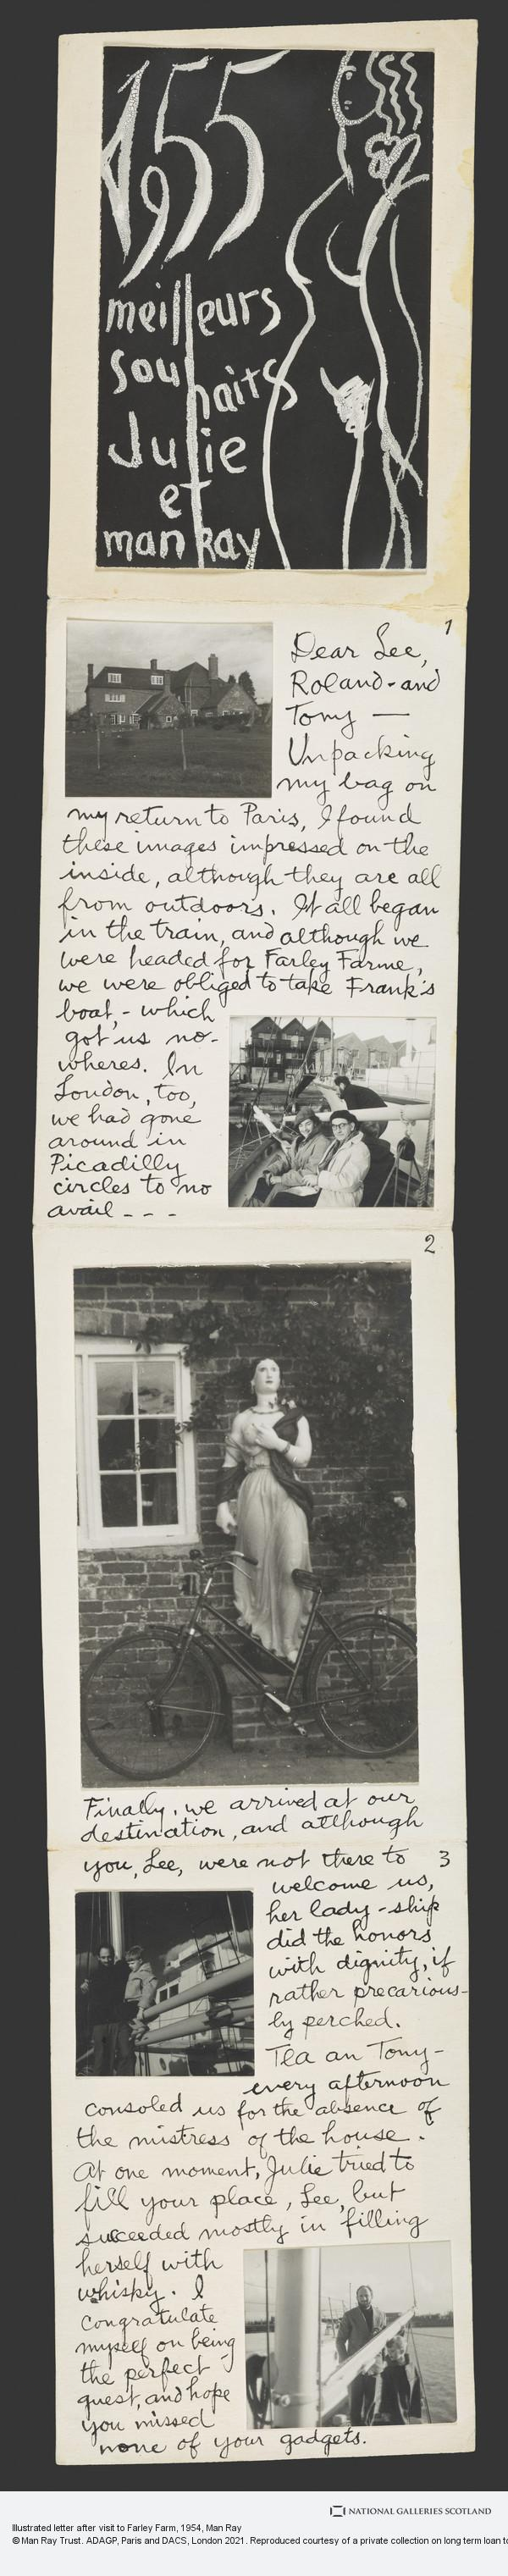 Man Ray, Illustrated letter after visit to Farley Farm